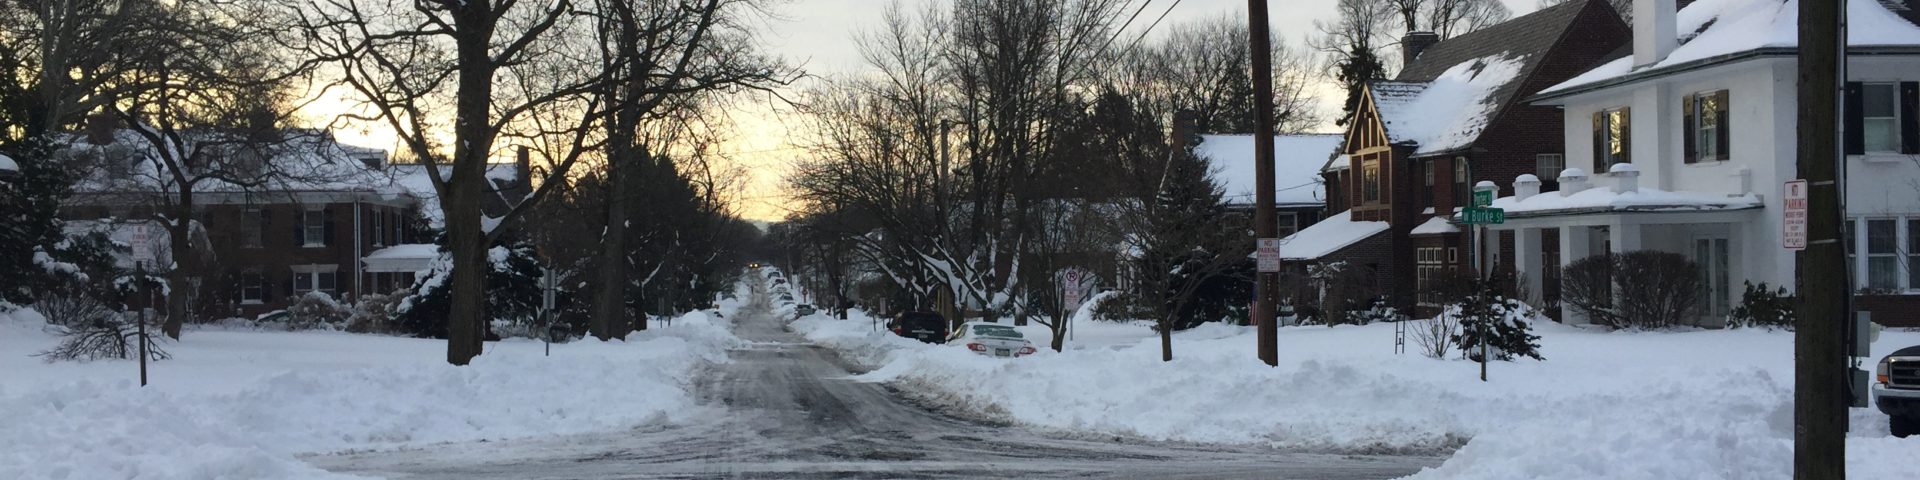 The snowy aftermath of January 2016's blizzard. It sidelined my exercise regime for a few days.